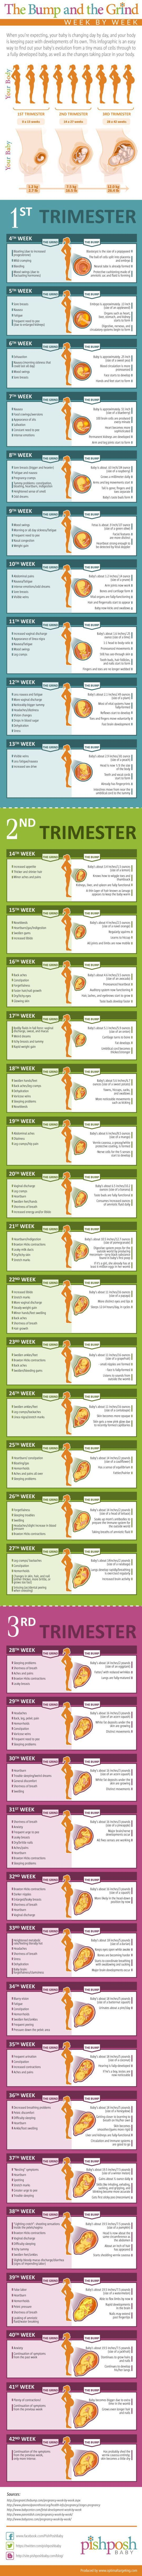 Best 25 weeks pregnant chart ideas on pinterest pregnant week pregnancy week by week chart nvjuhfo Choice Image